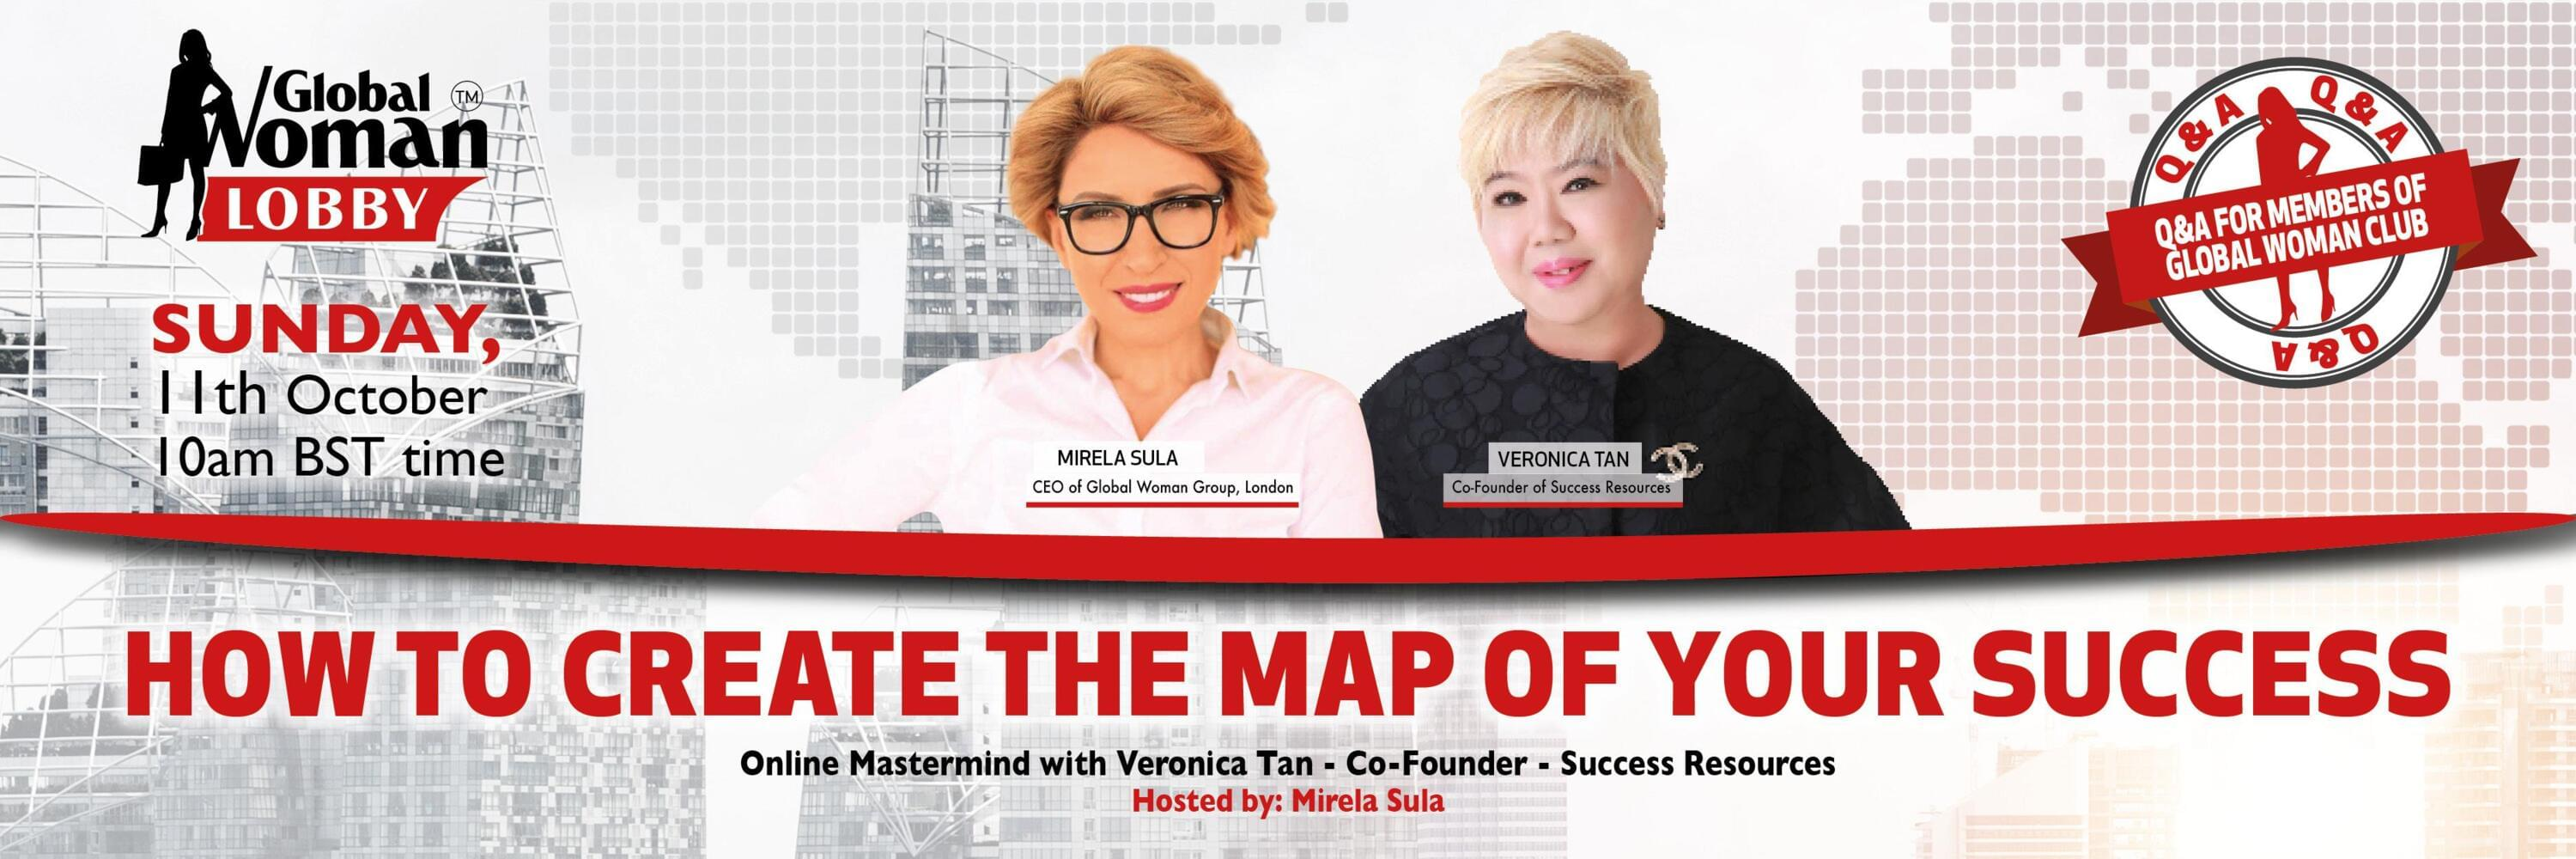 How To Create The Map of Your Success